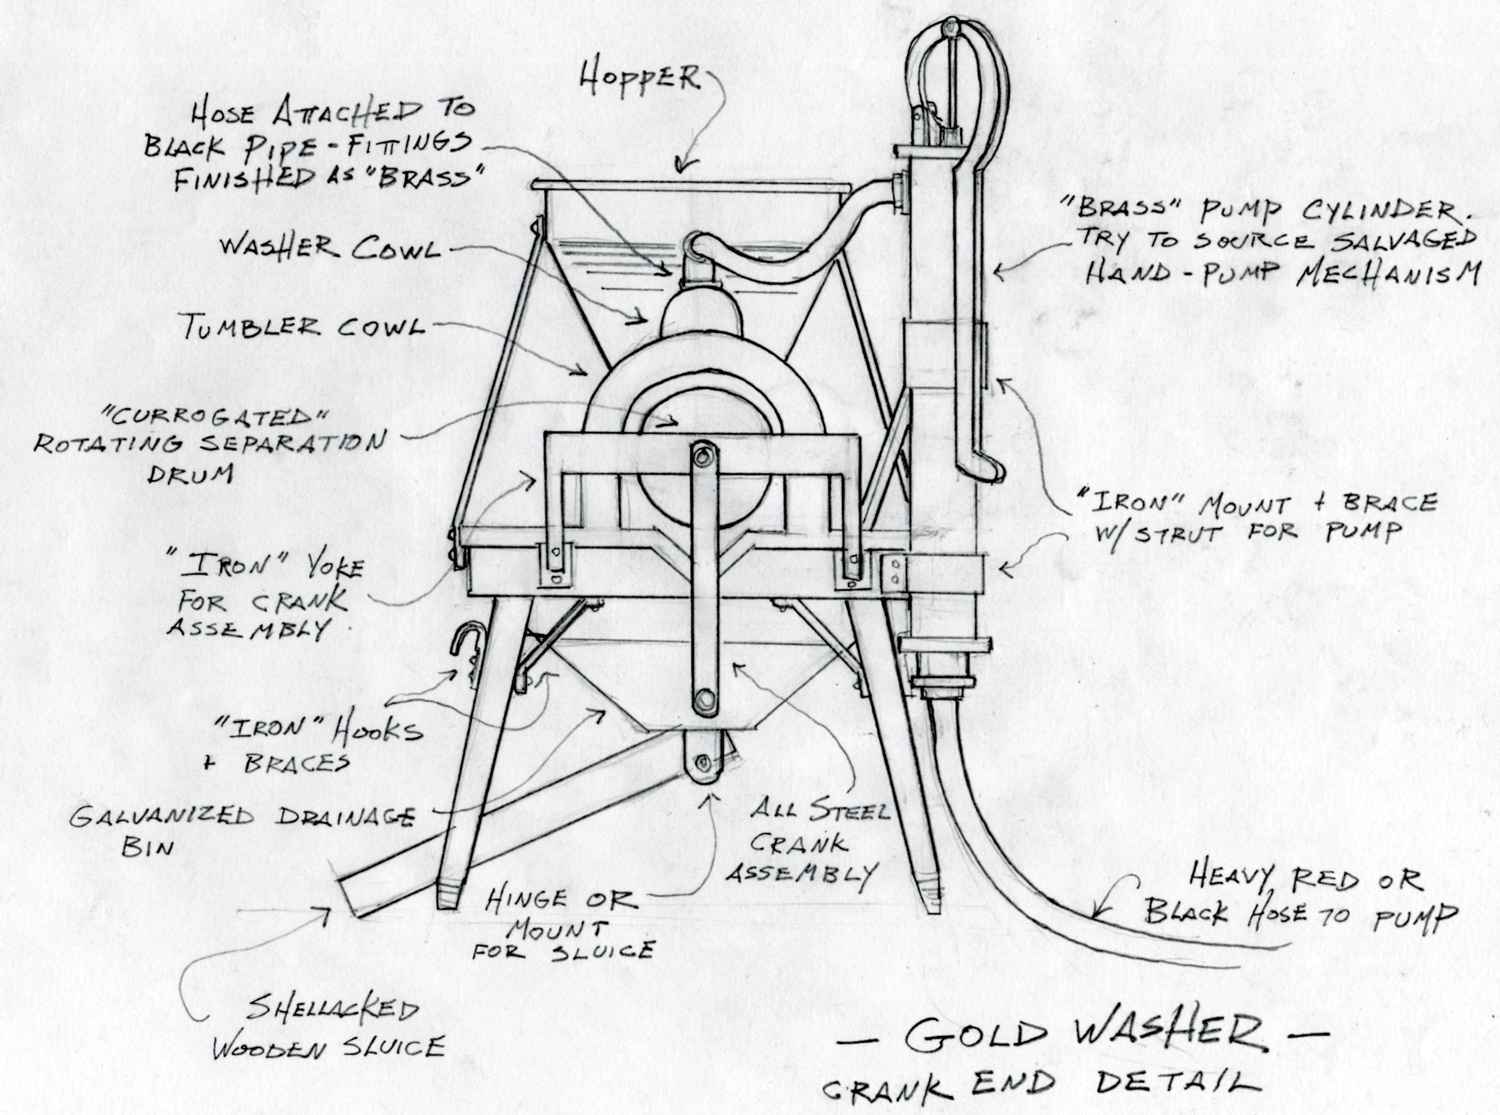 A sketch of the crank and hand-pump end of the gold washer.